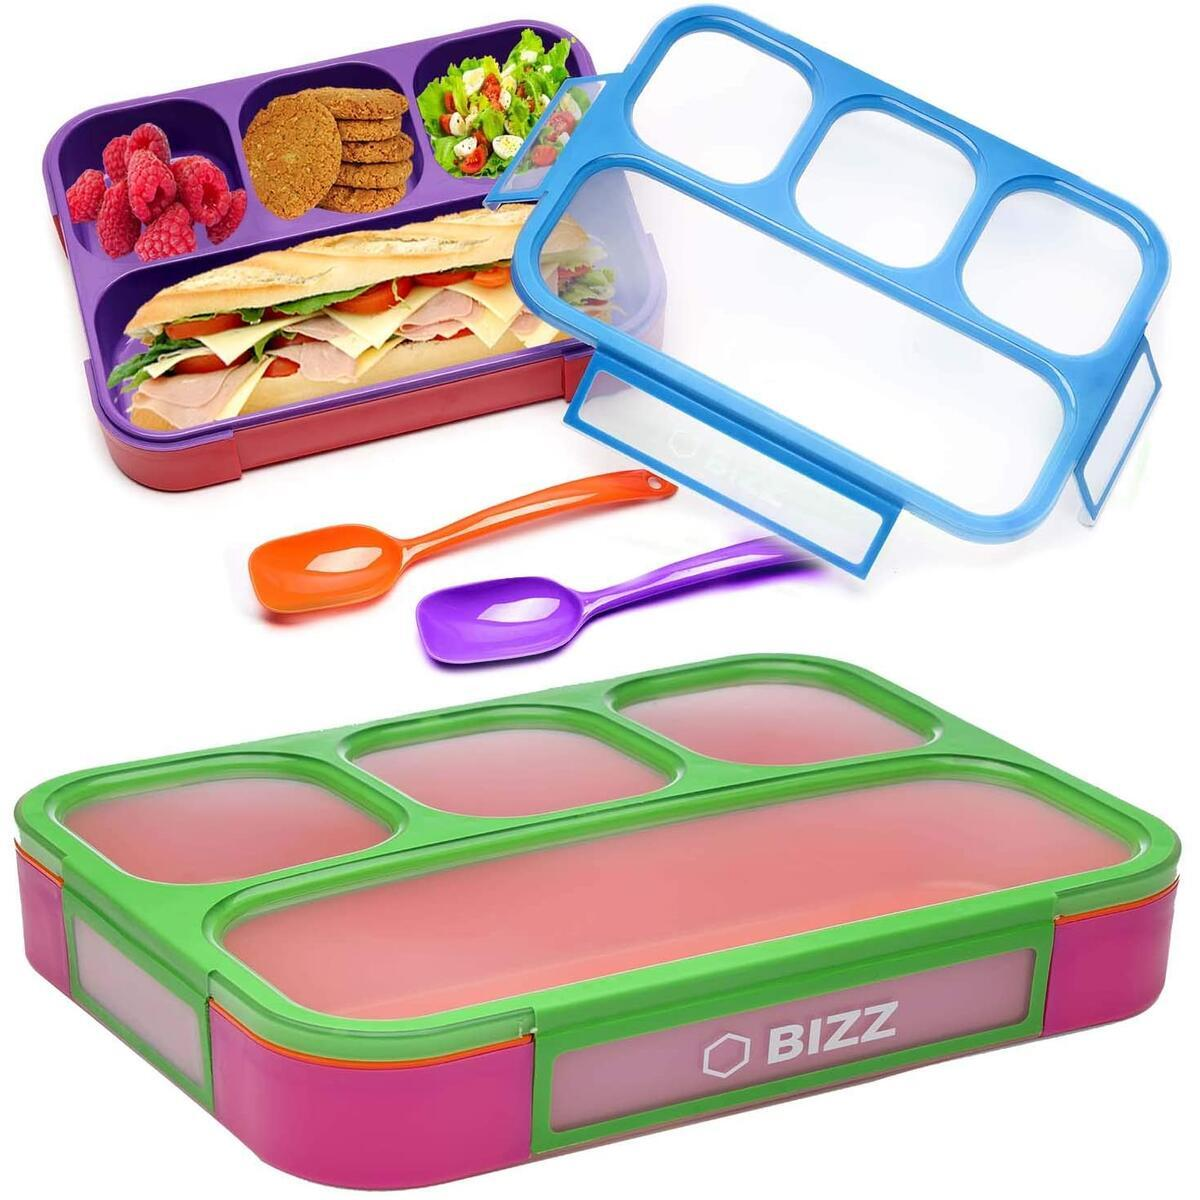 Bent Box - Back to School Lunch - Spoon included - 2pk